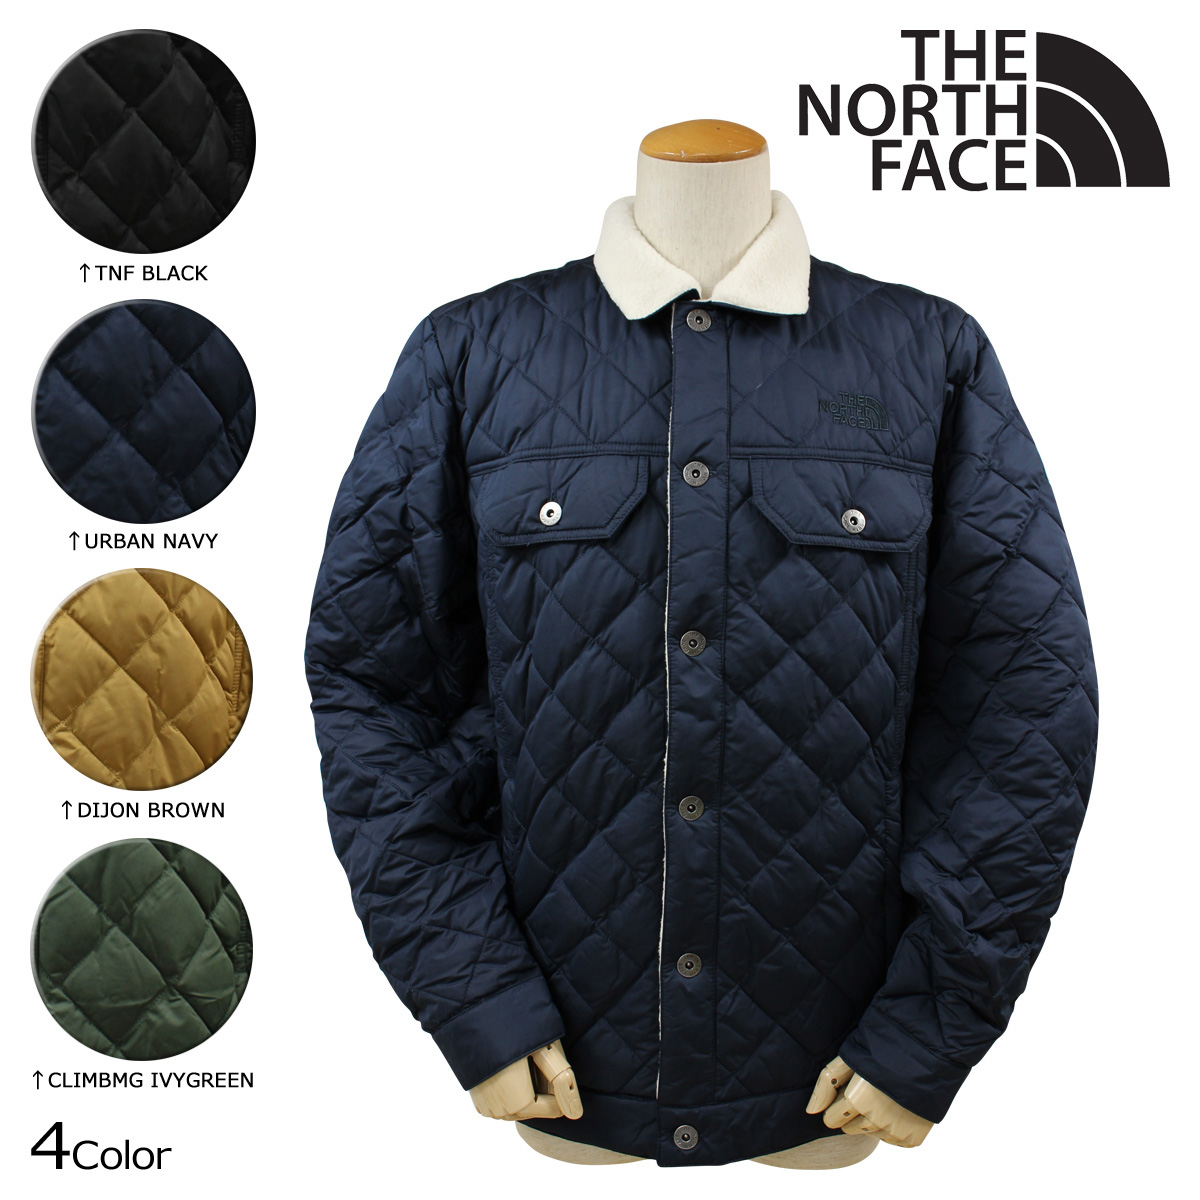 822dee0f2b5de6 THE NORTH FACE the north face Shell Jacket MEN'S SHERPA THERMOBALL JACKET  NF0A2TCA jacket [9 ...